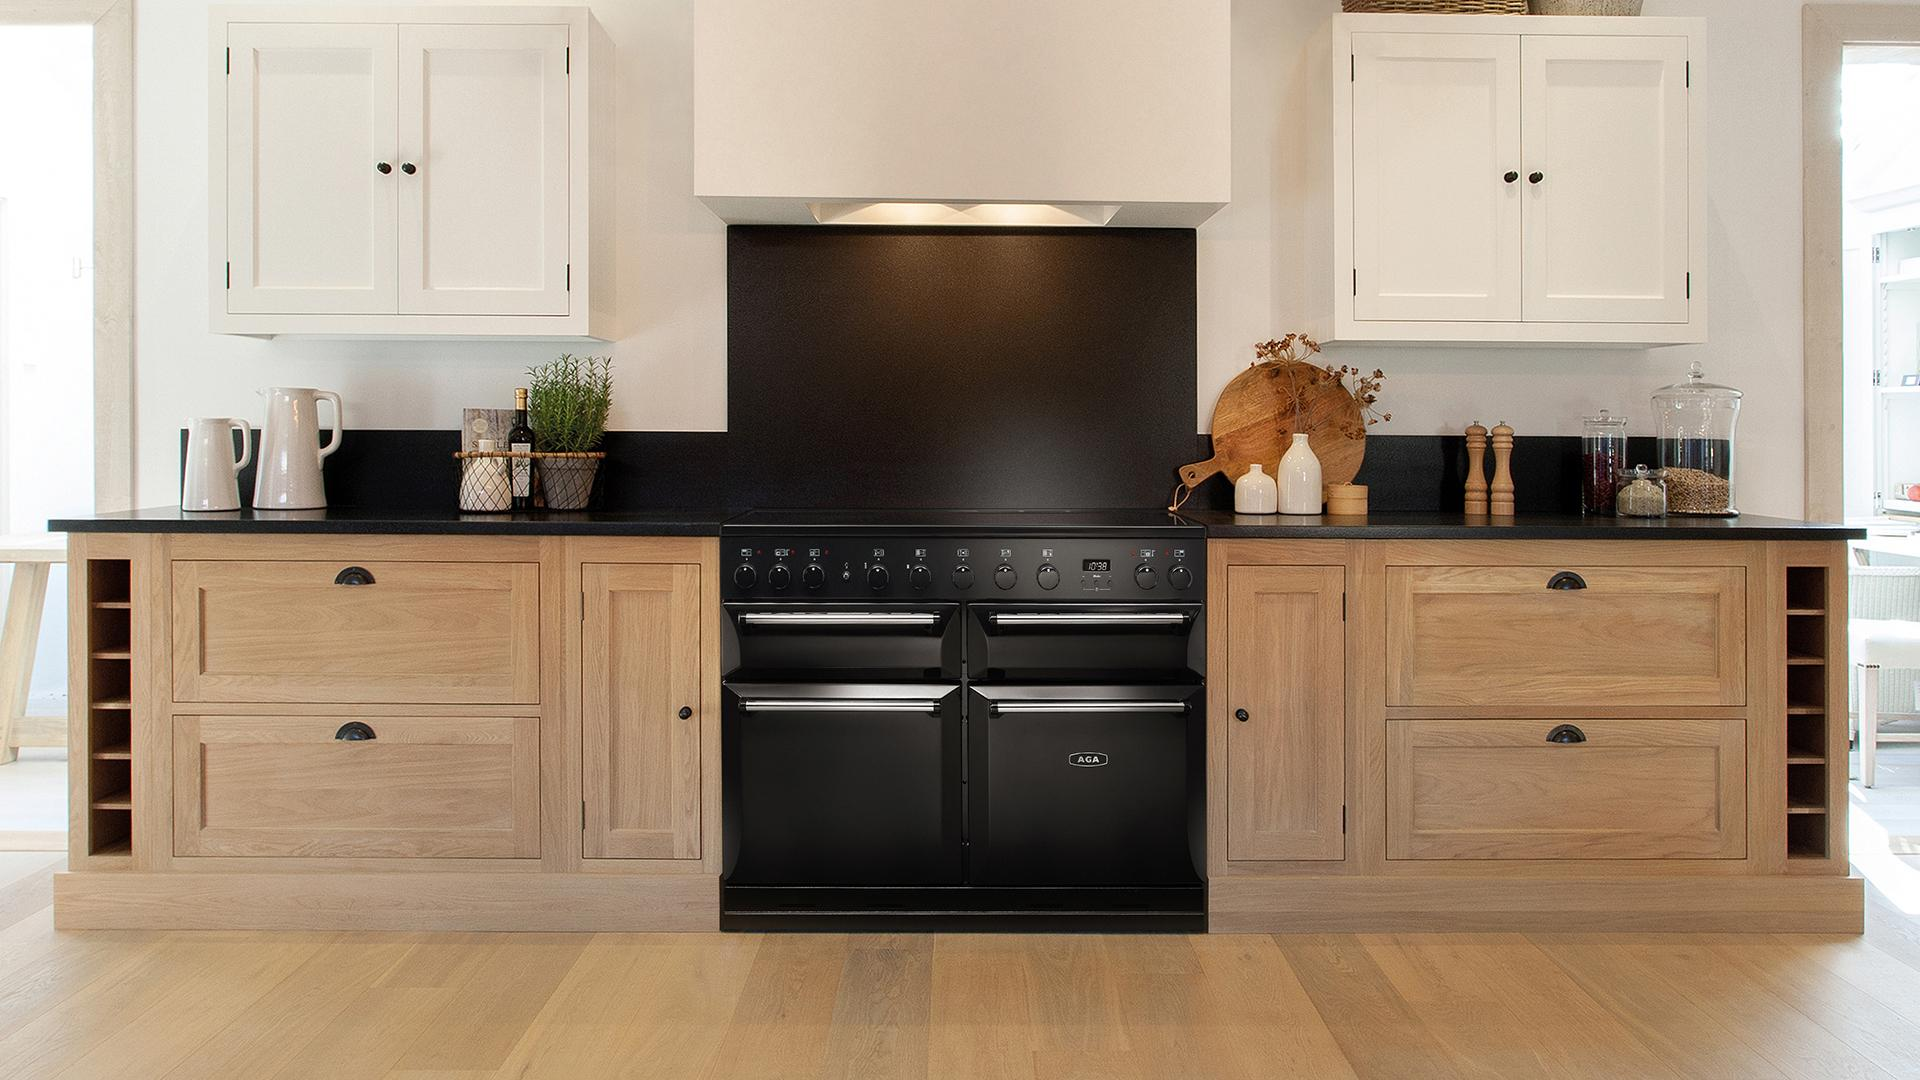 AGA Masterchef Deluxe 110 Induction in Black